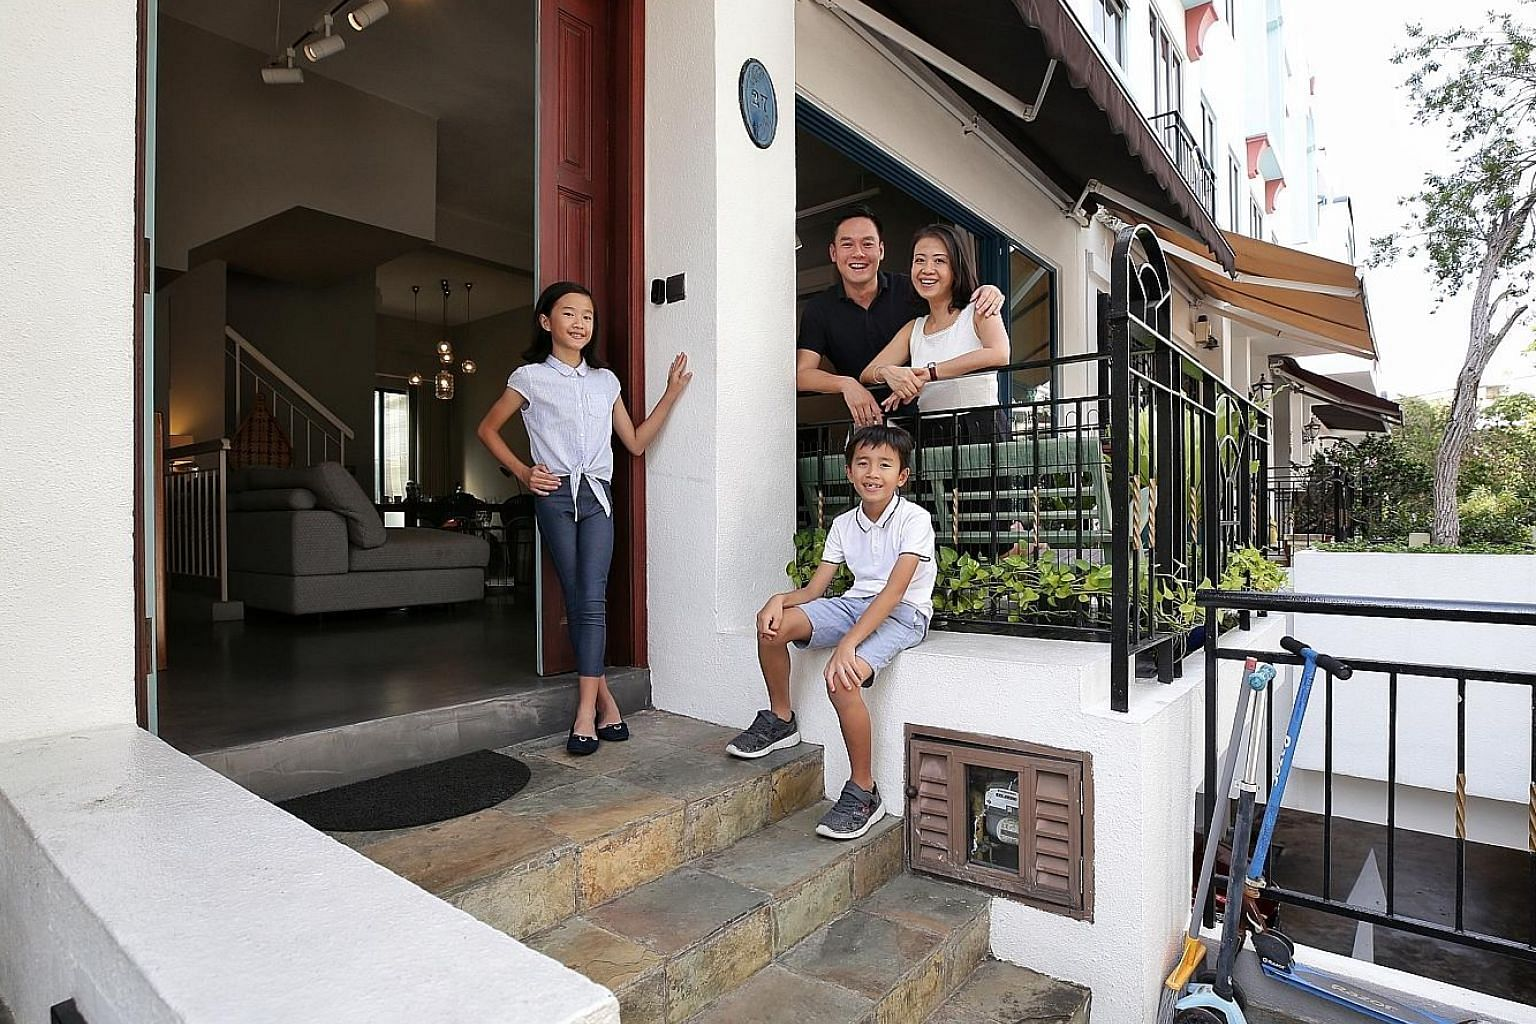 The facade of Ms Pam Chuang's cluster house, which has cross-ventilation with front and back balconies and an unblocked view. ST PHOTO: KEVIN LIM Ms Pam Chuang, vice-president of sales and partnerships at GoBear, and her husband Ivan Lee, with their